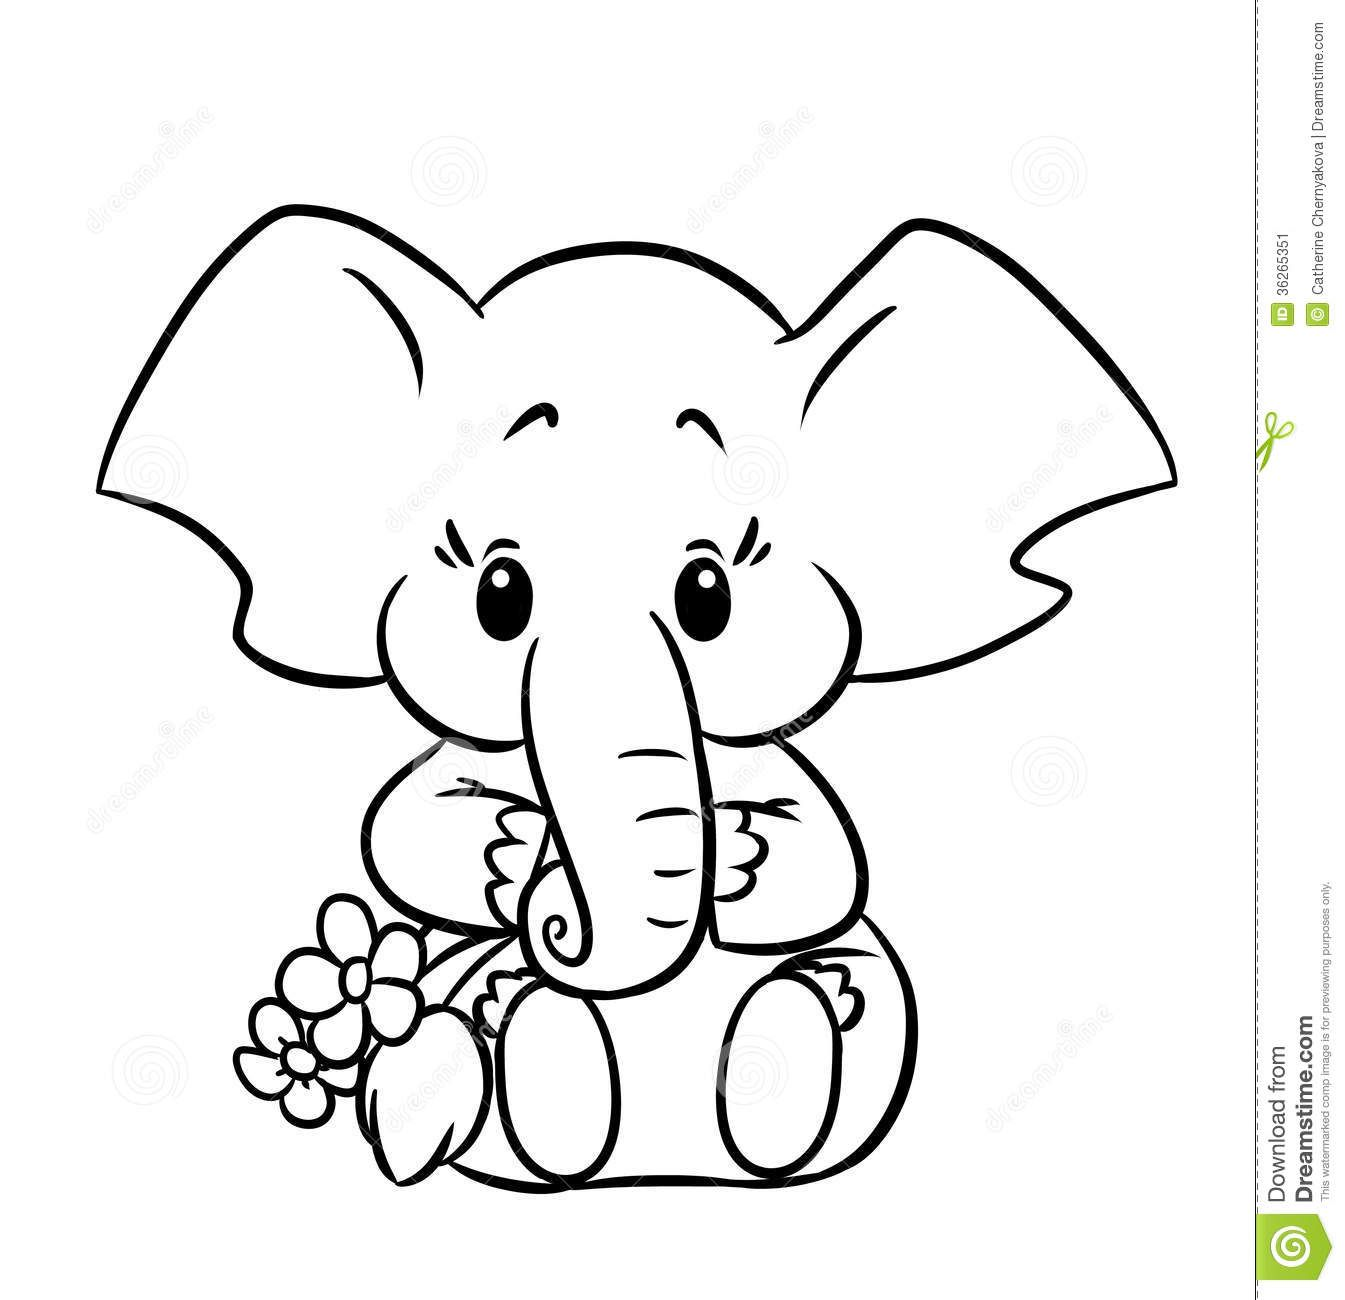 simple baby elephant coloring pages elephant cartoon drawing at getdrawings free download elephant simple pages coloring baby